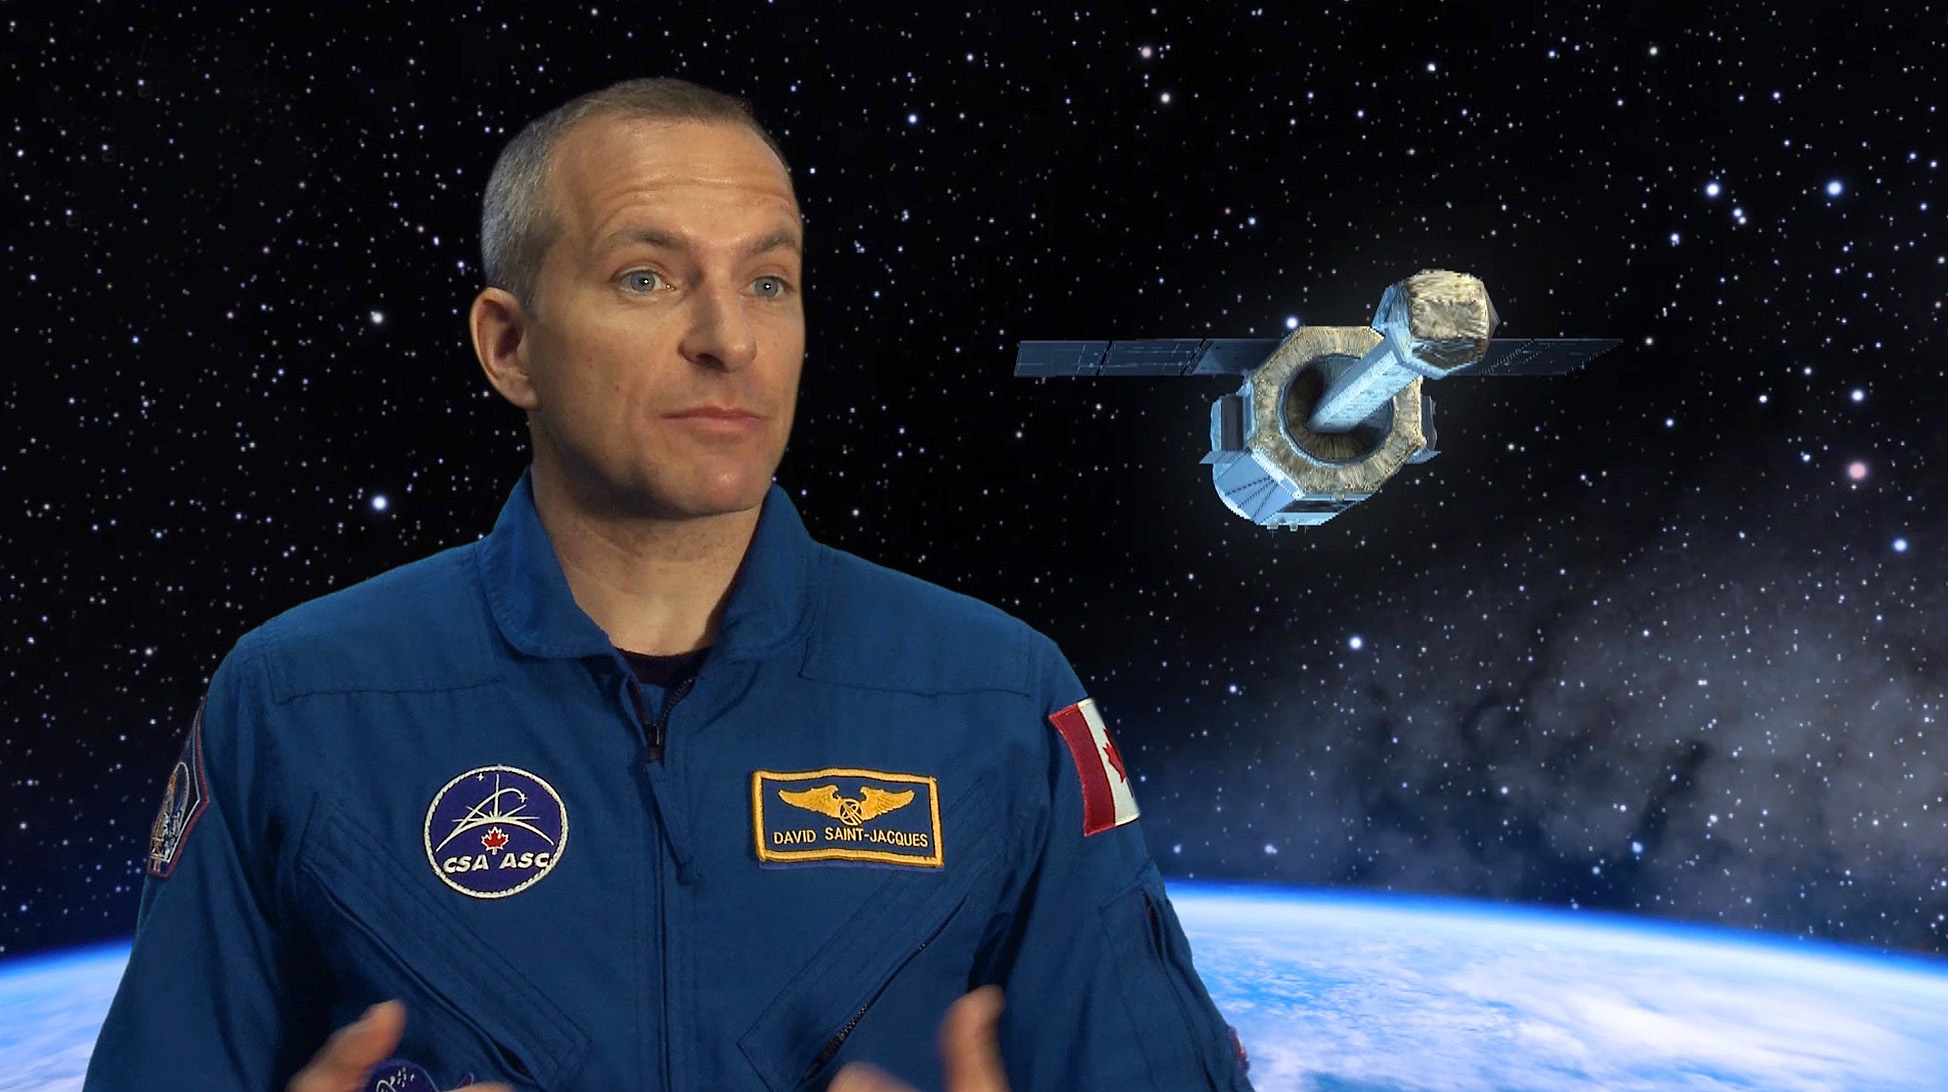 Astronaut David Saint-Jacques explains the ASTRO-H mission